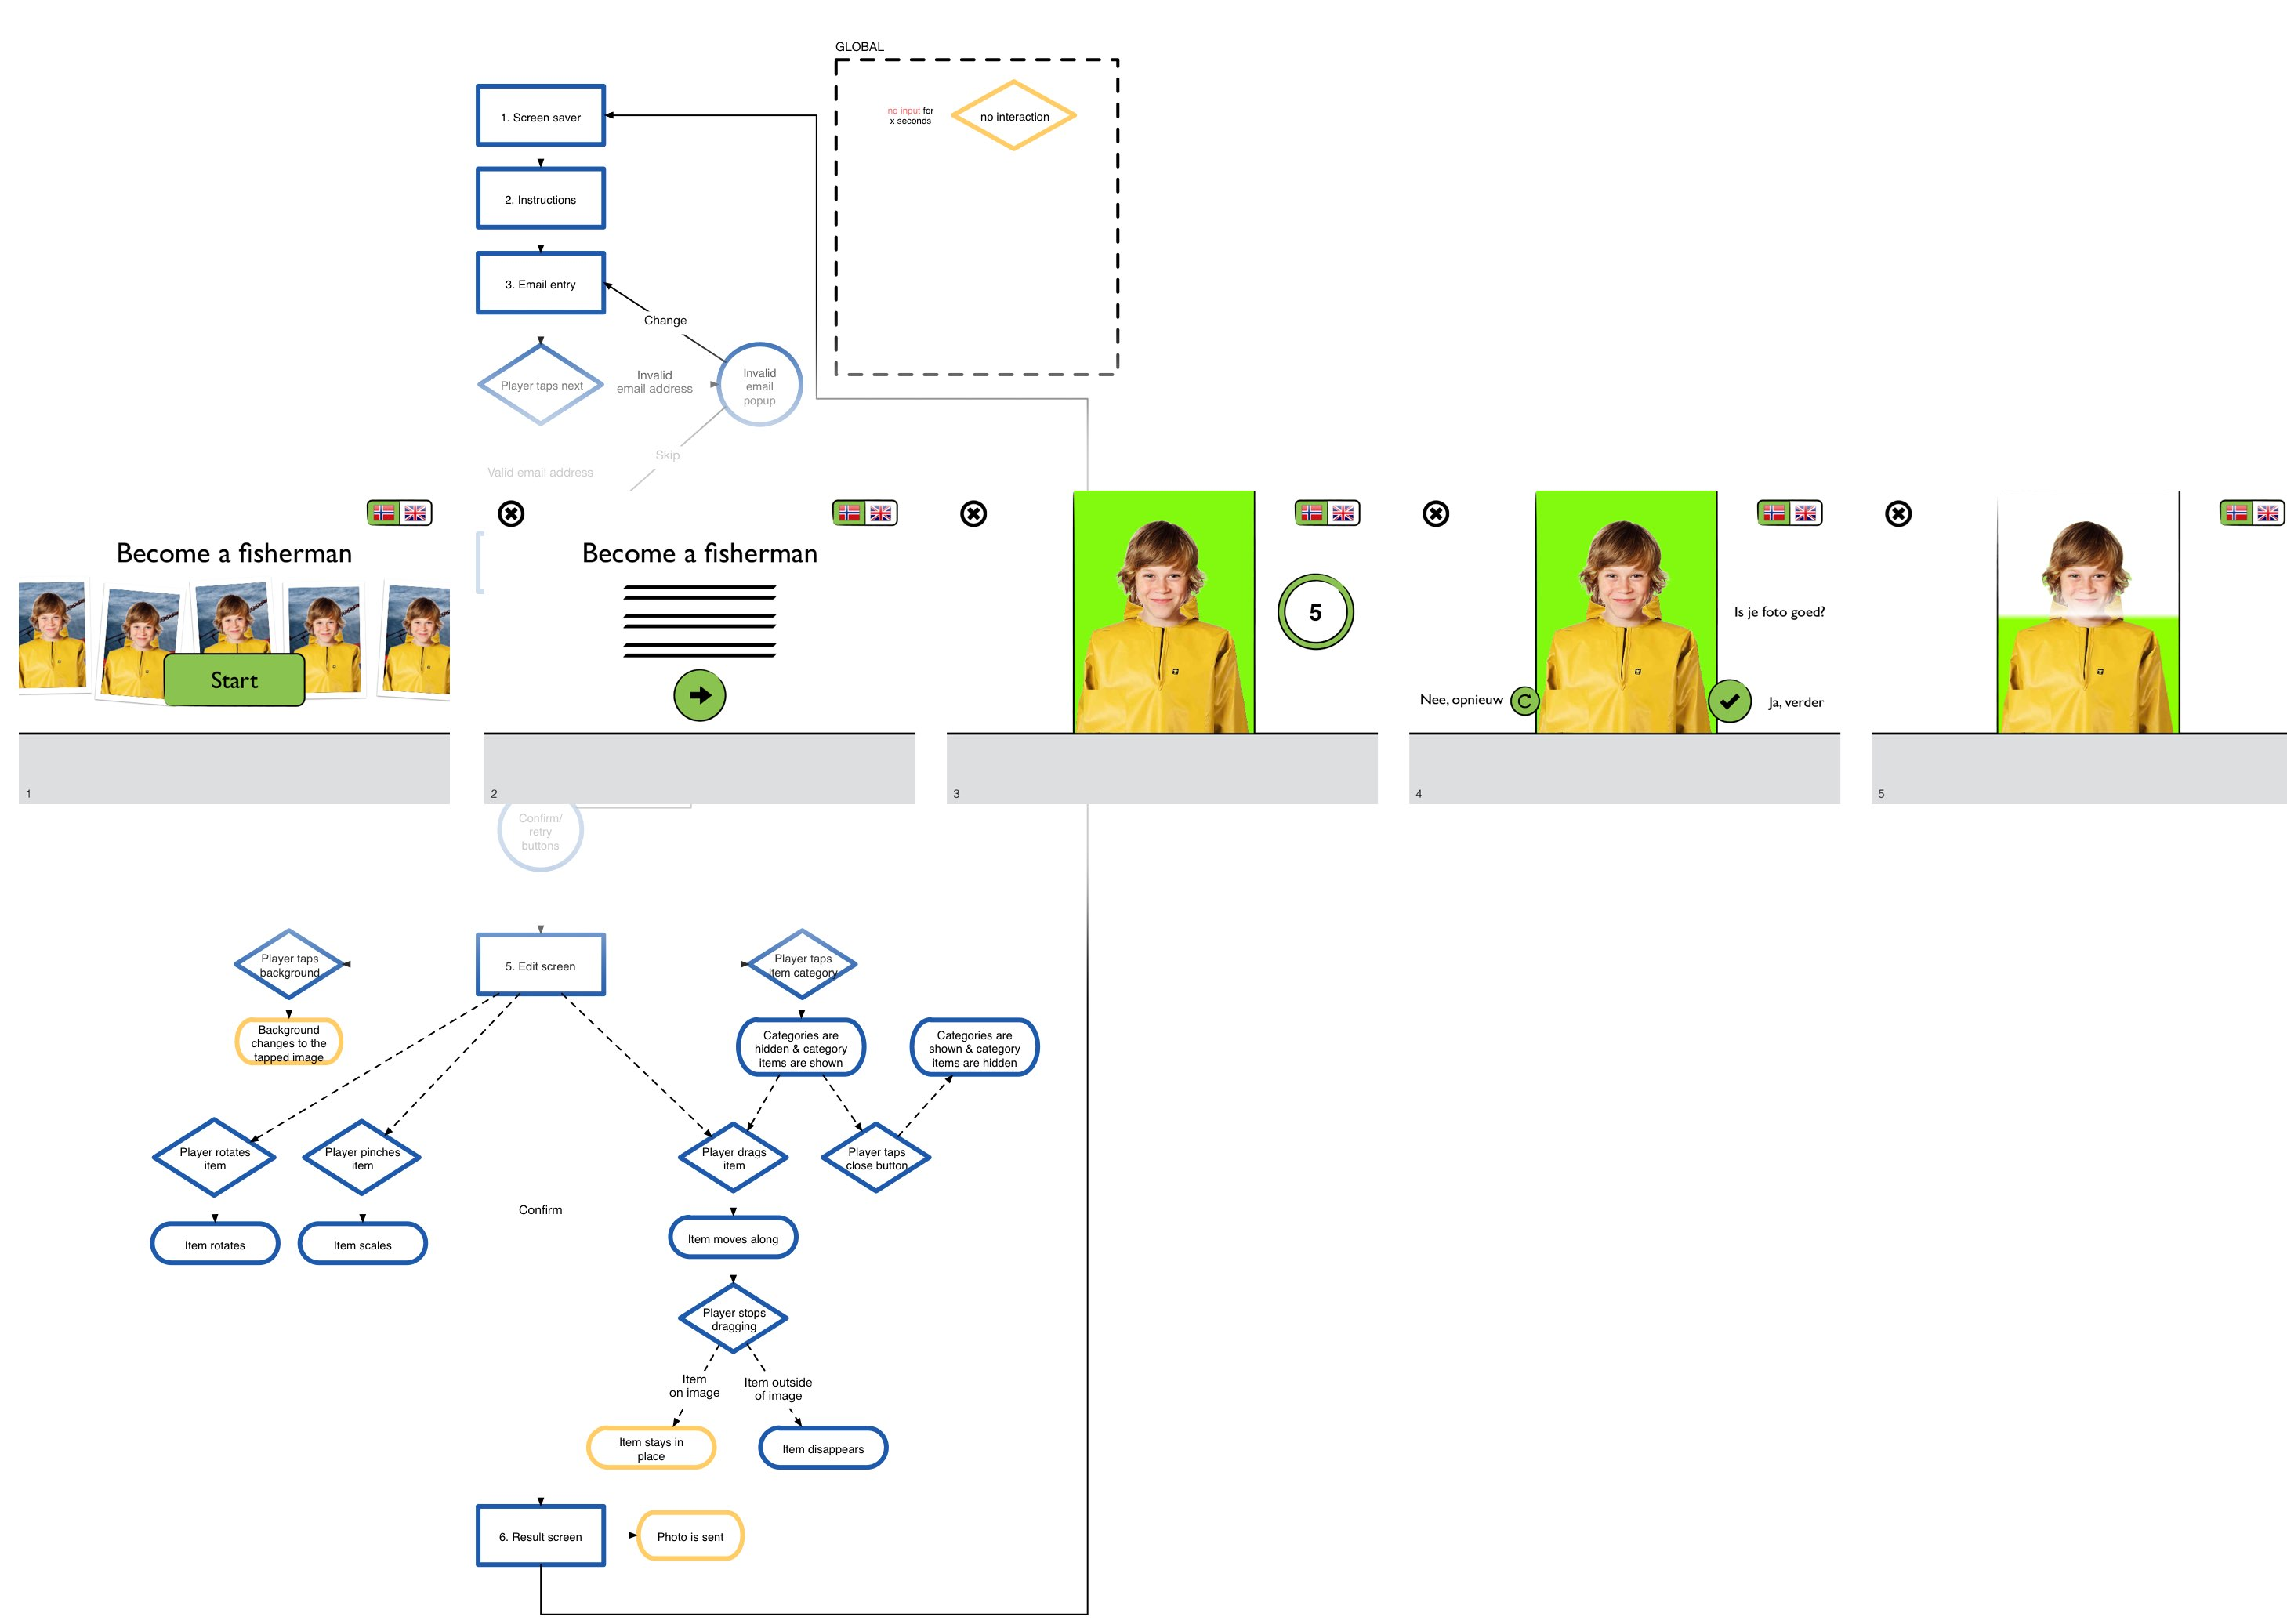 Exhibit storyboard and flow chart